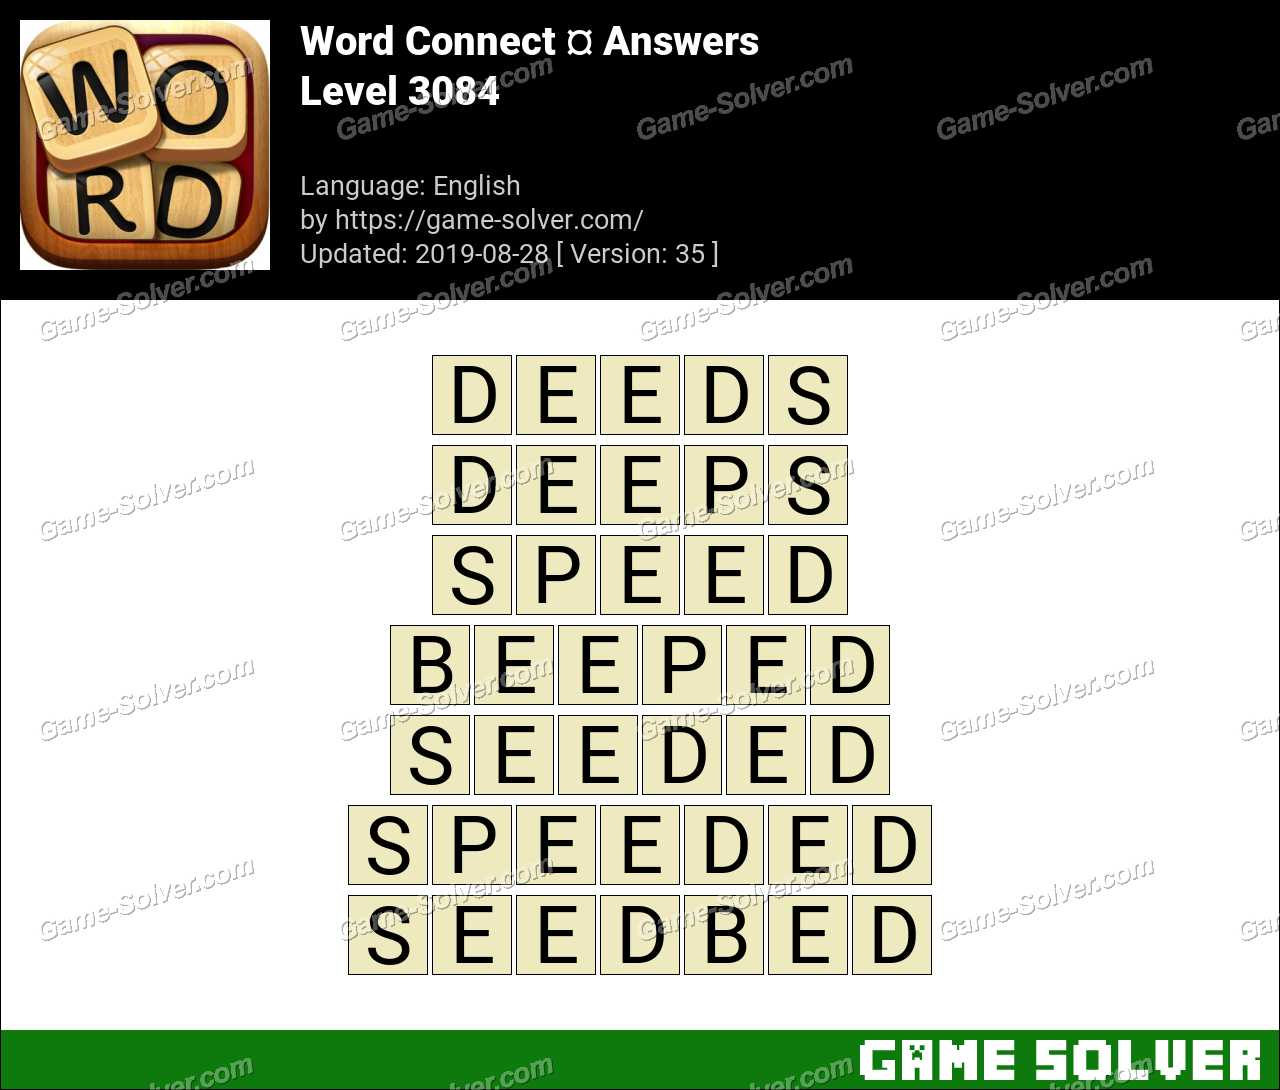 Word Connect Level 3084 Answers